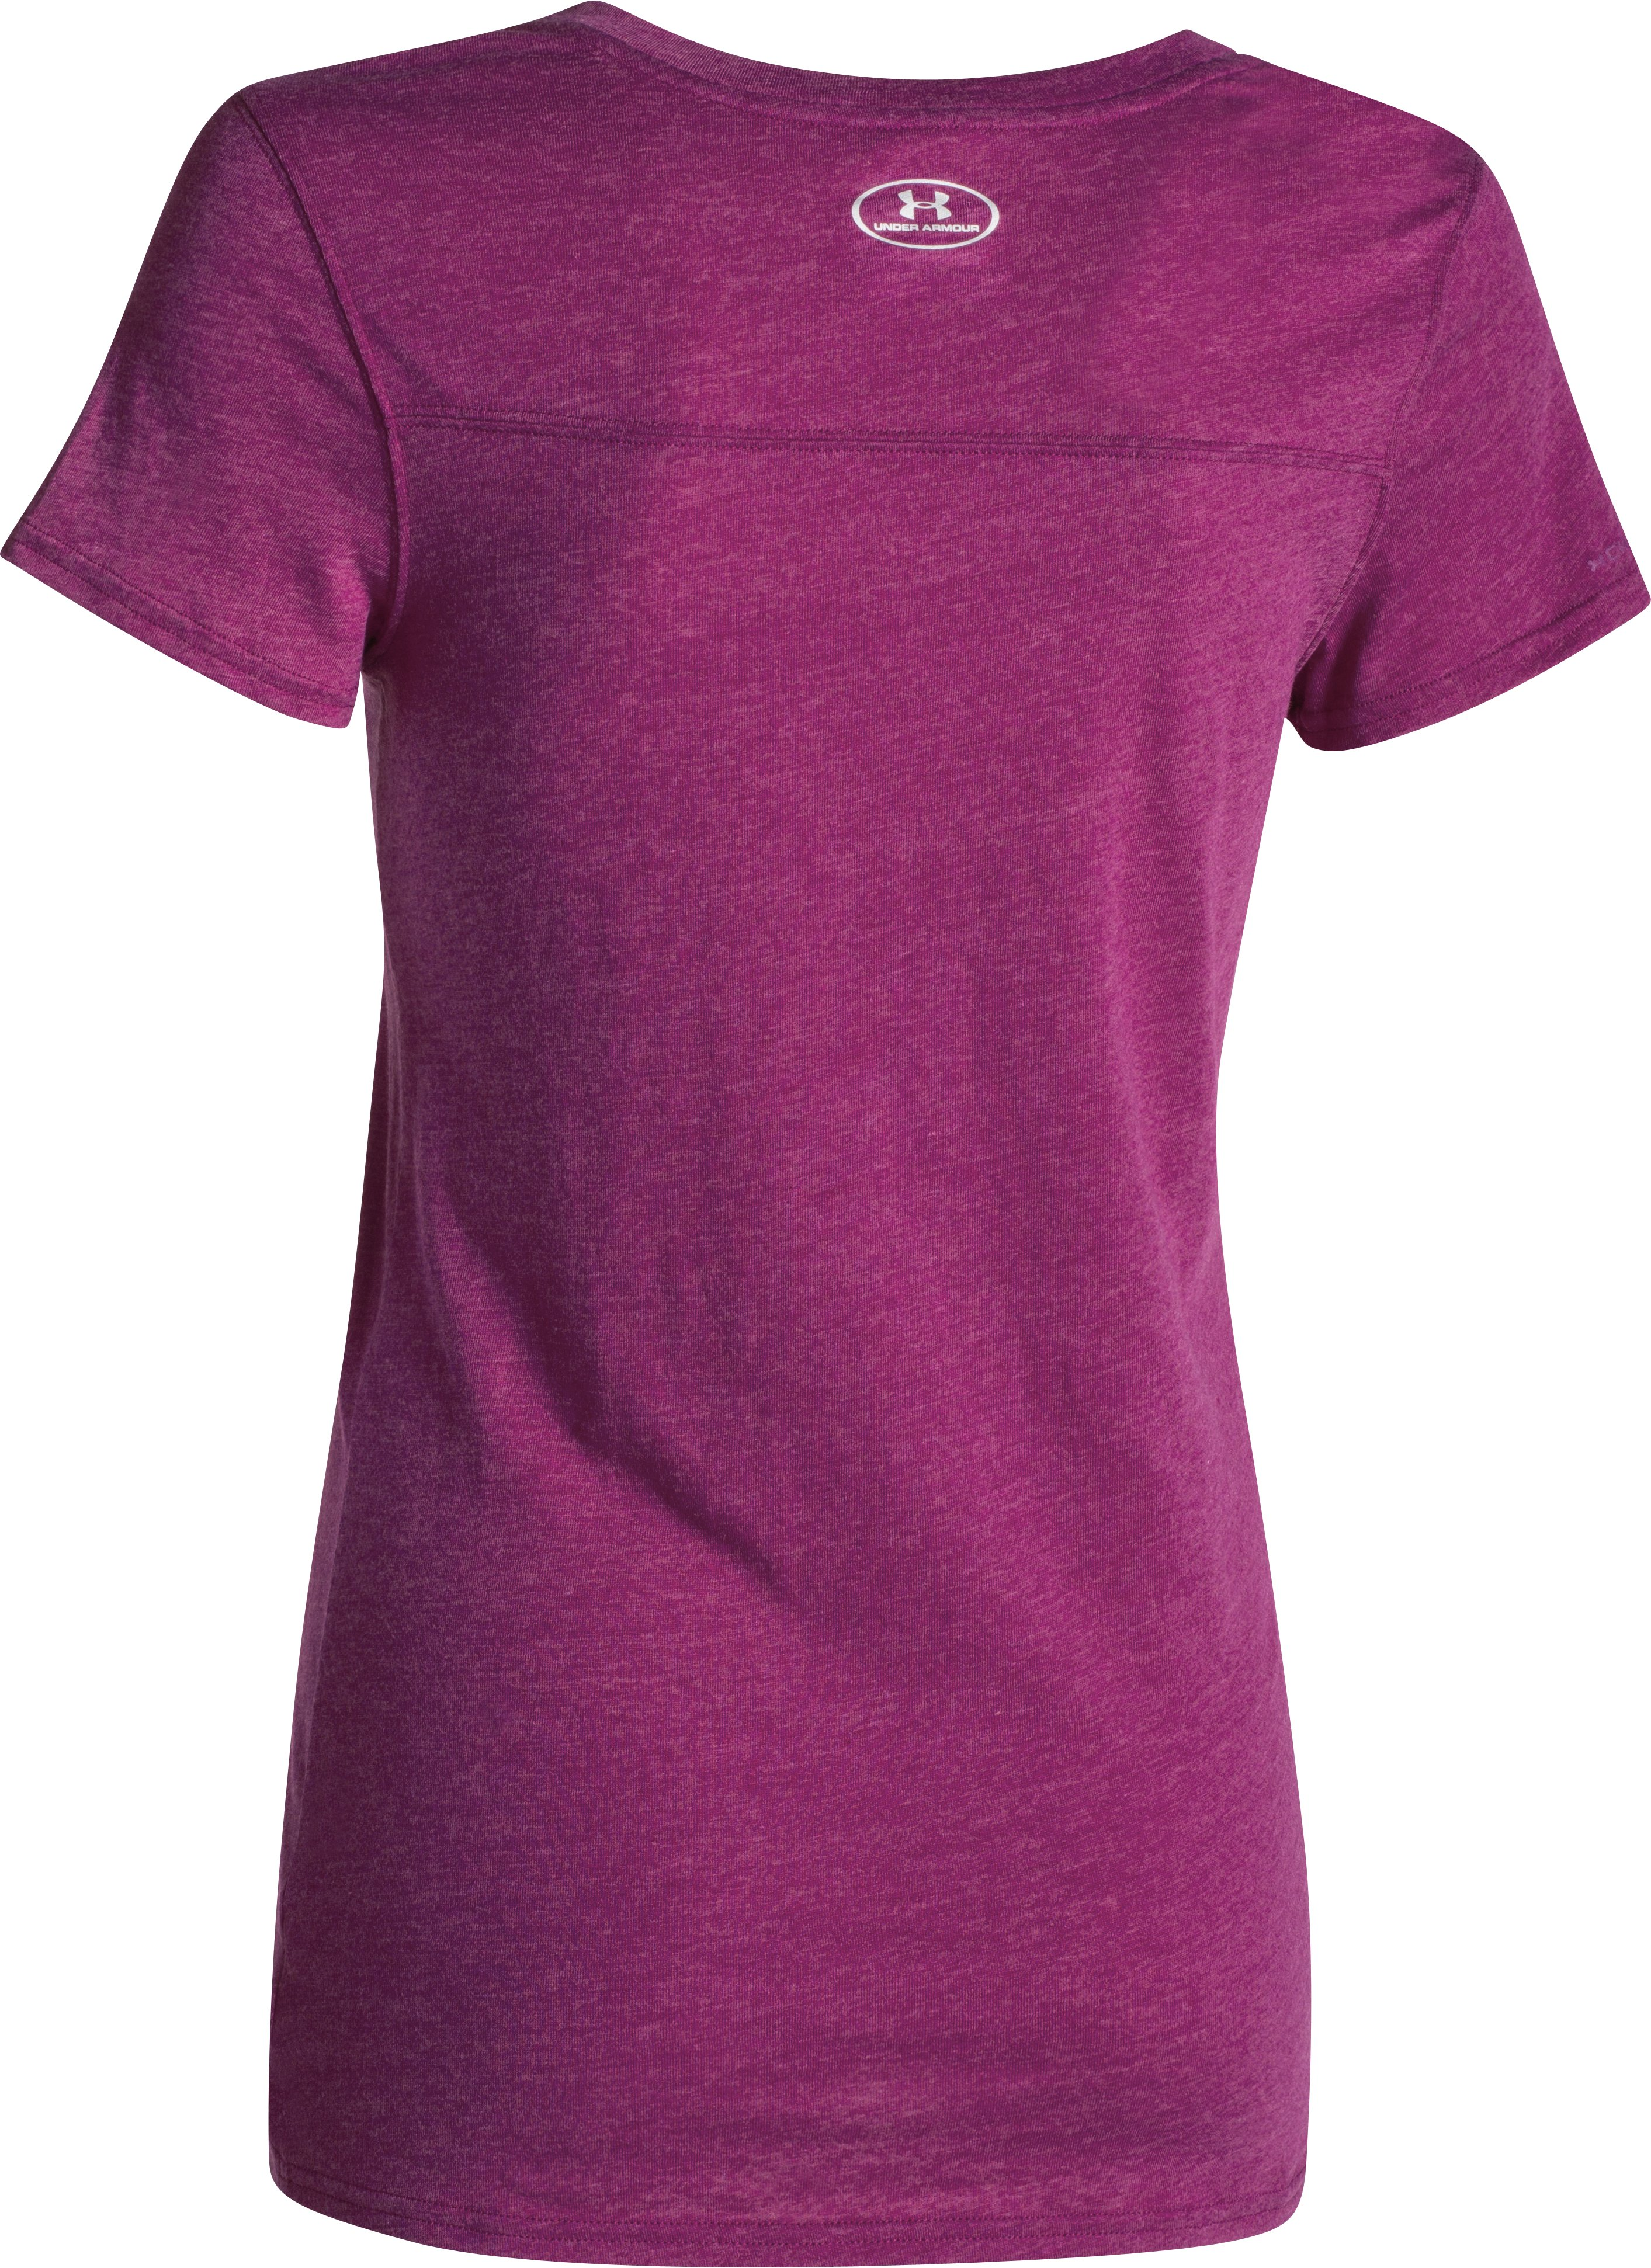 Women's UA Charged Cotton® Tri-Blend Under Armour T-Shirt, Aubergine, undefined